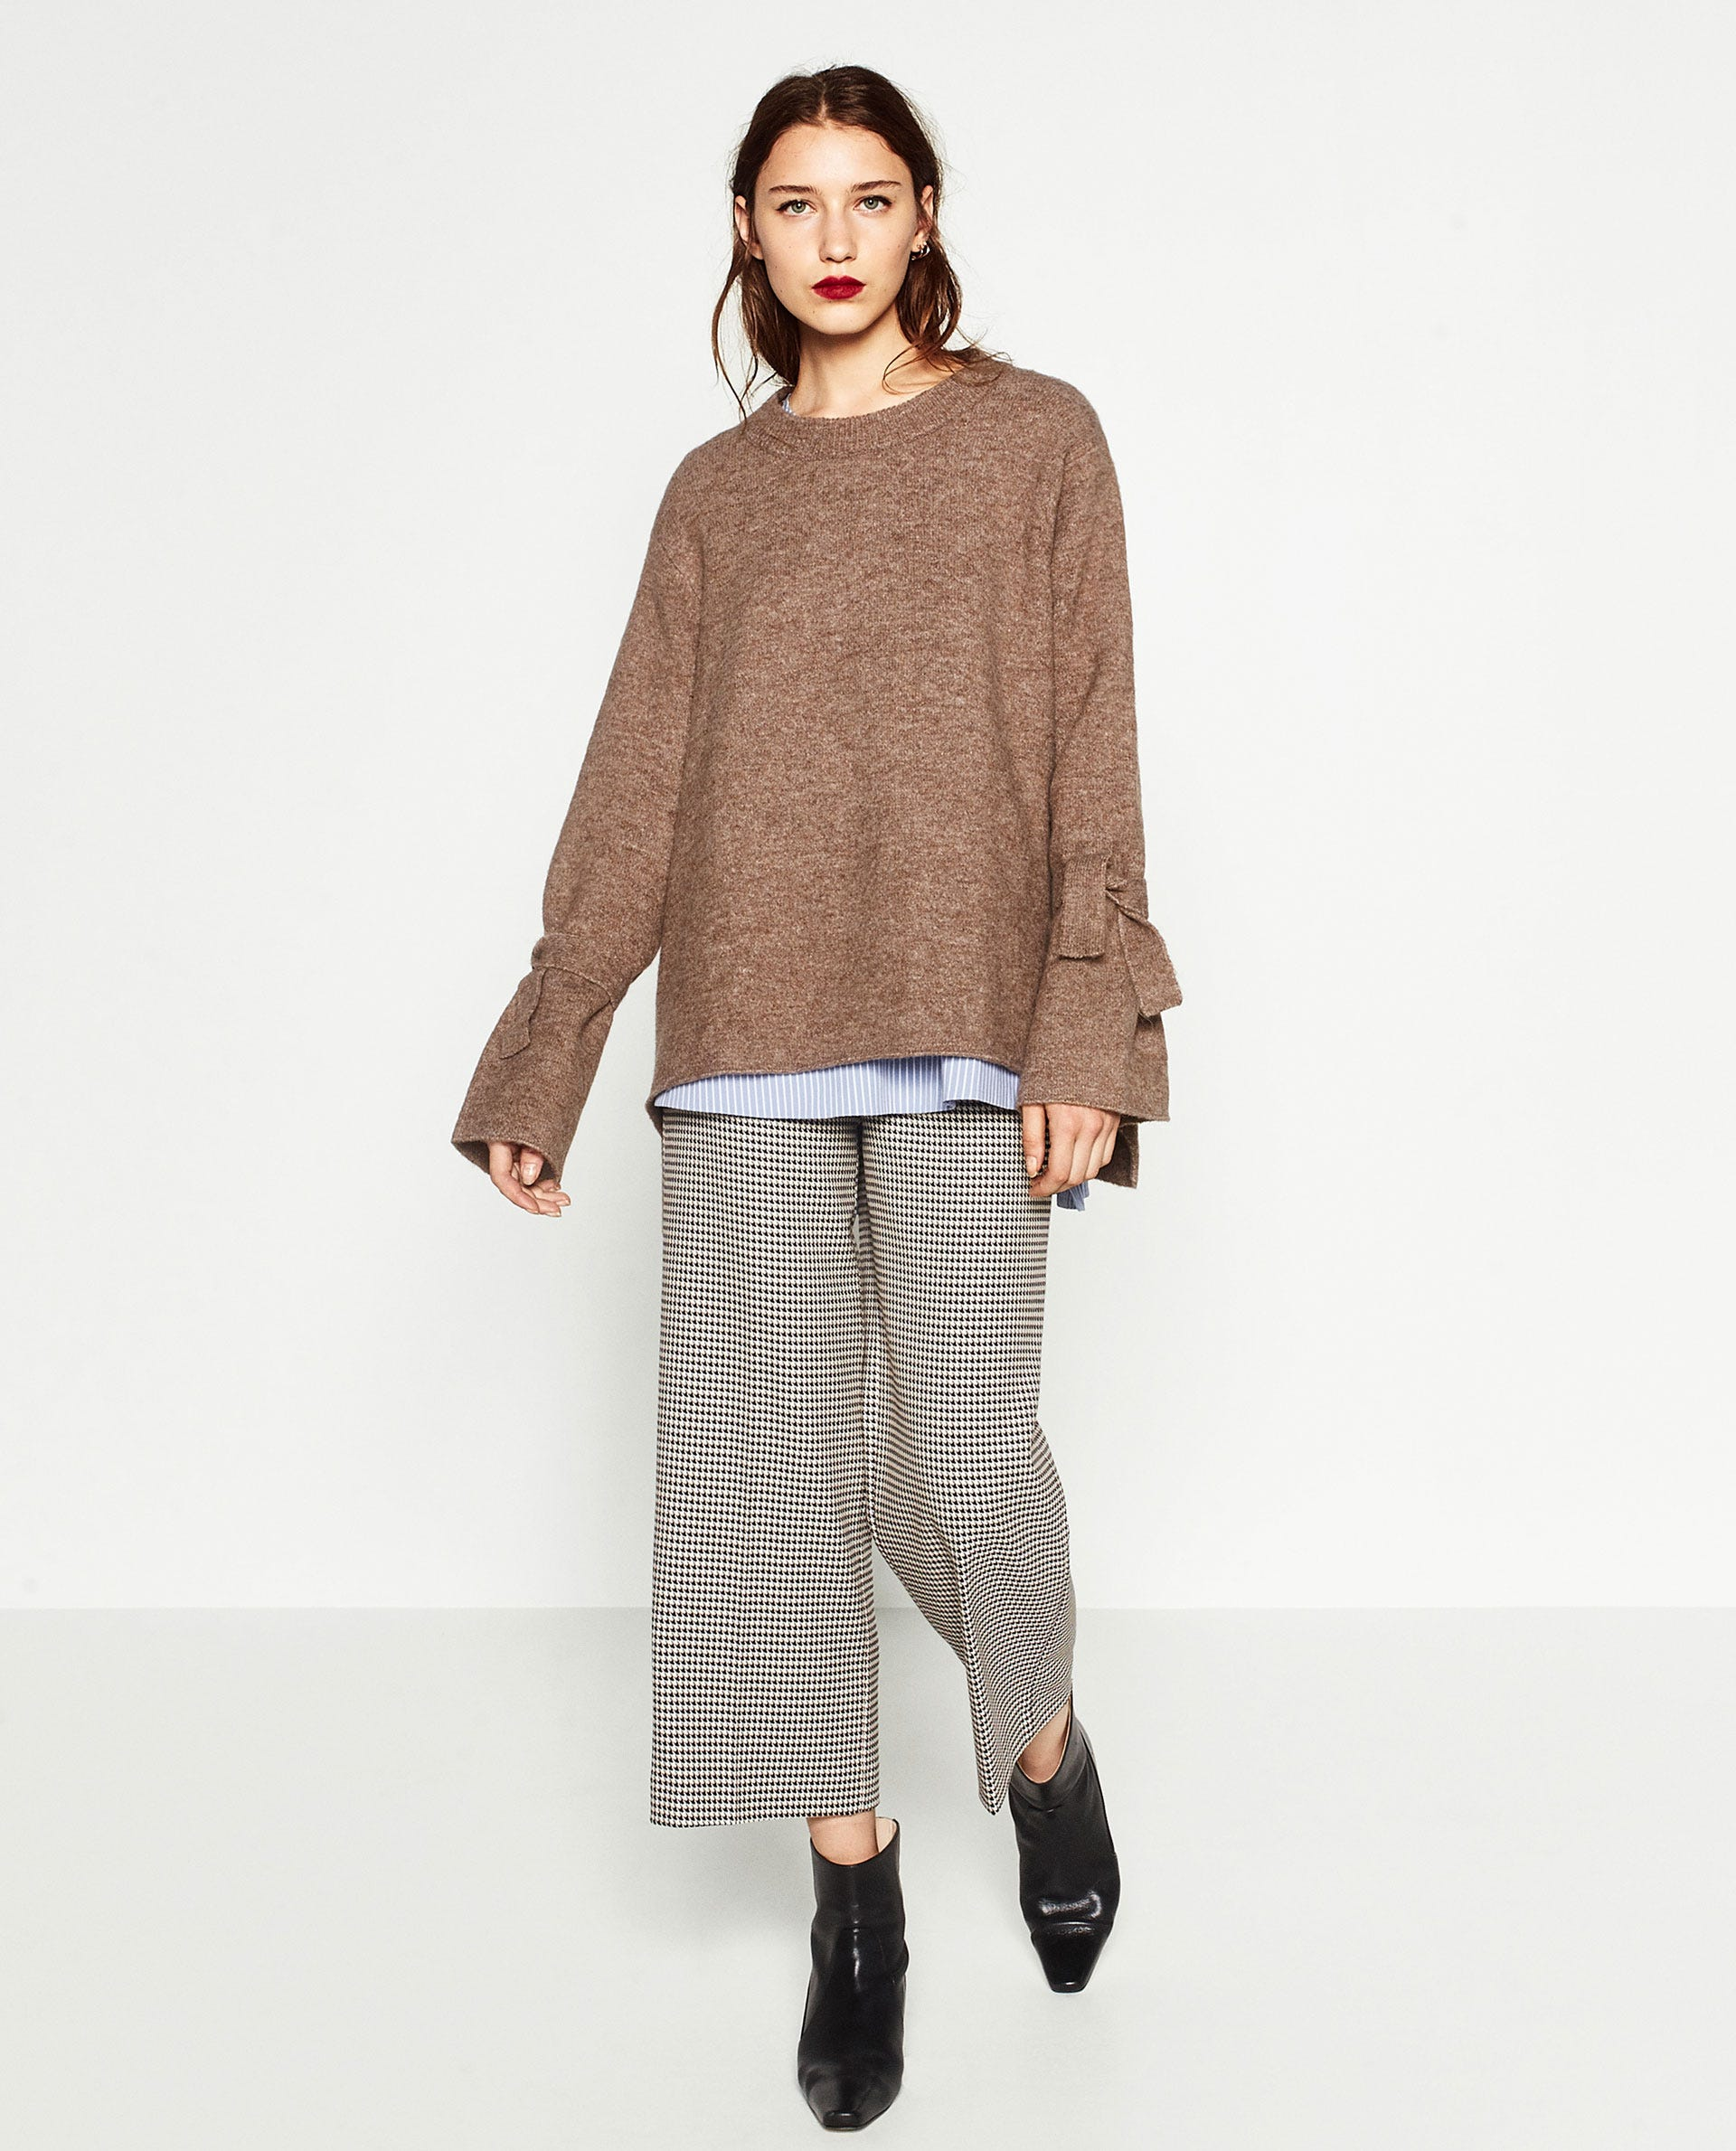 images Zara Has Almost 500 Jumpers, But These 17 Are the Best